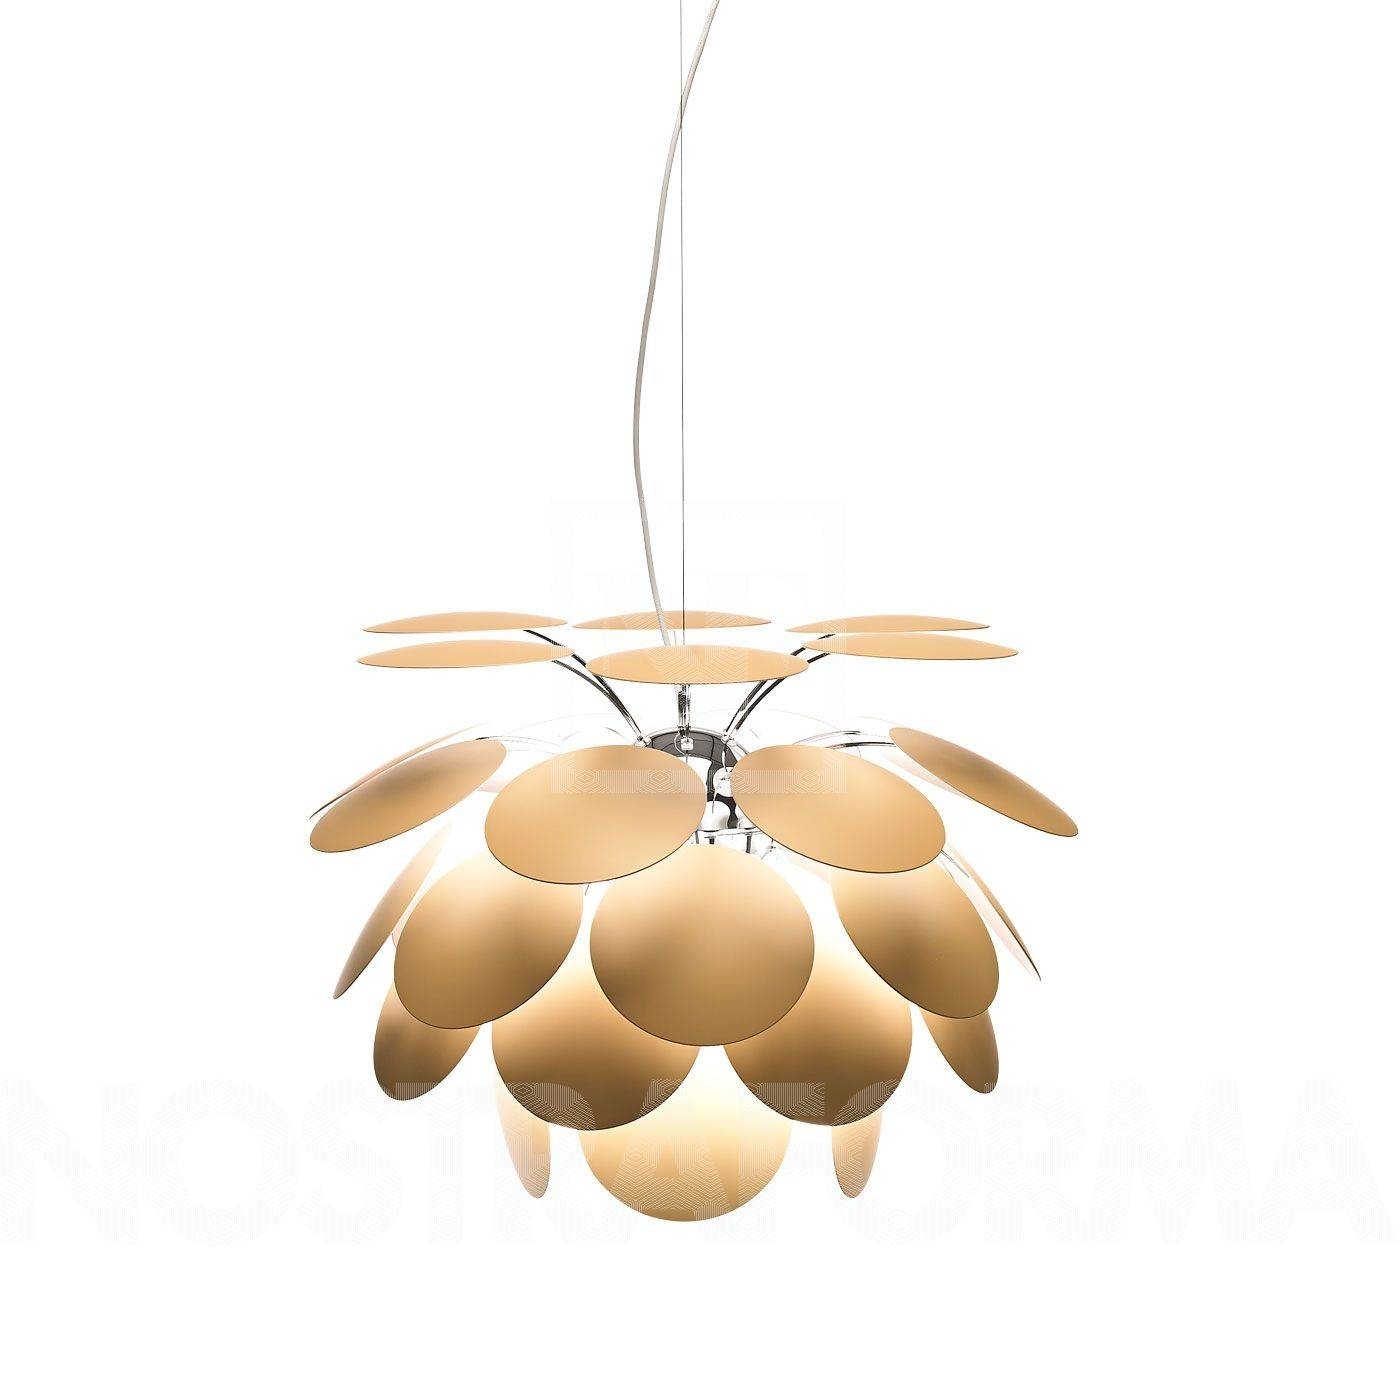 Marset Discoco 68 Pendant Lamp, Medium » Modern And Contemporary within Discoco Pendant Lights (Image 14 of 15)